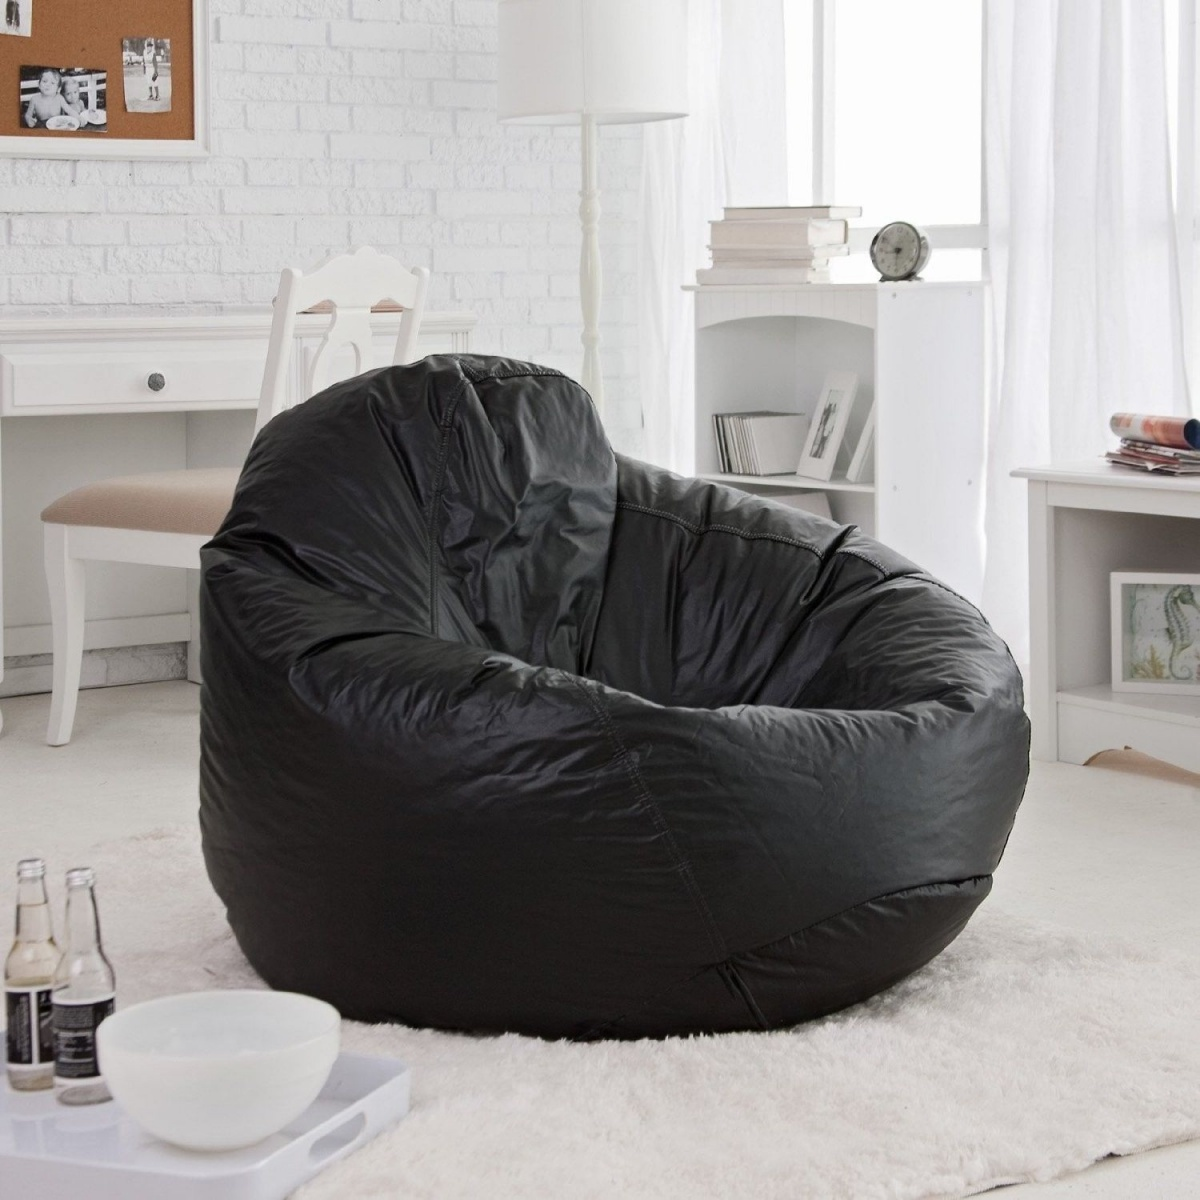 bean bag chair cost ergonomic melbourne best chairs for adults ideas with images